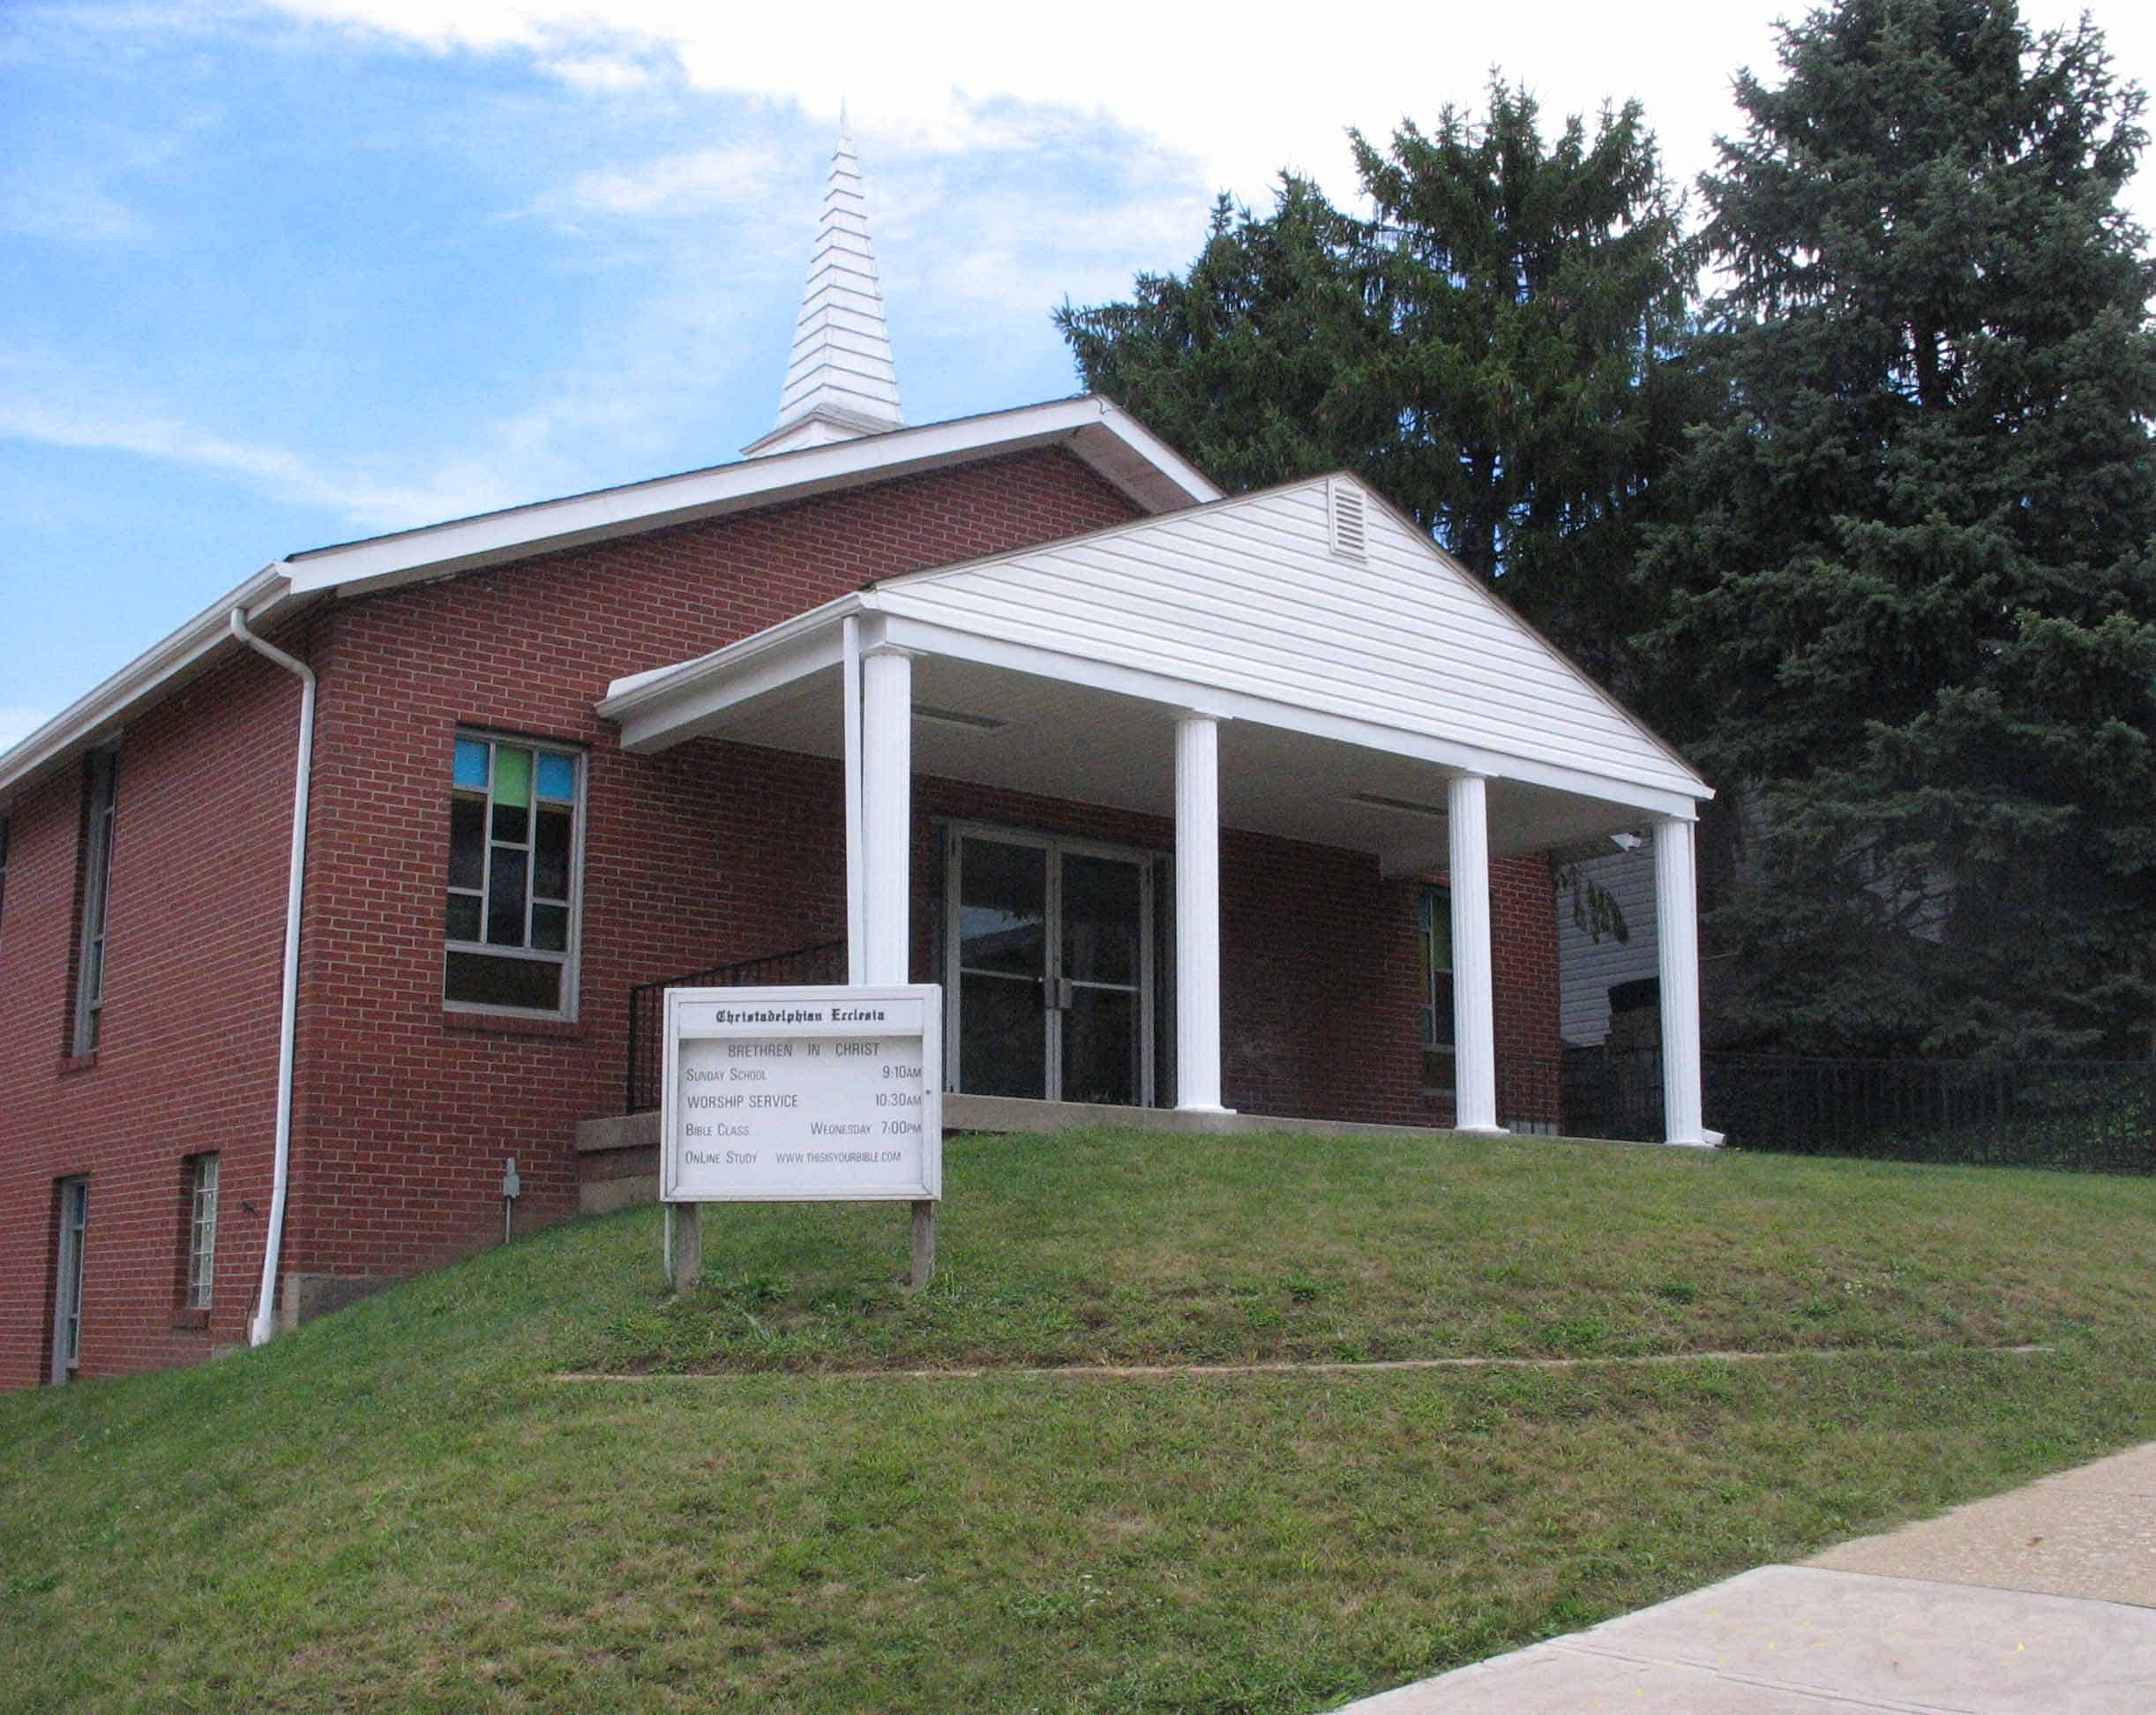 Pittsburgh Ecclesia Meeting Hall